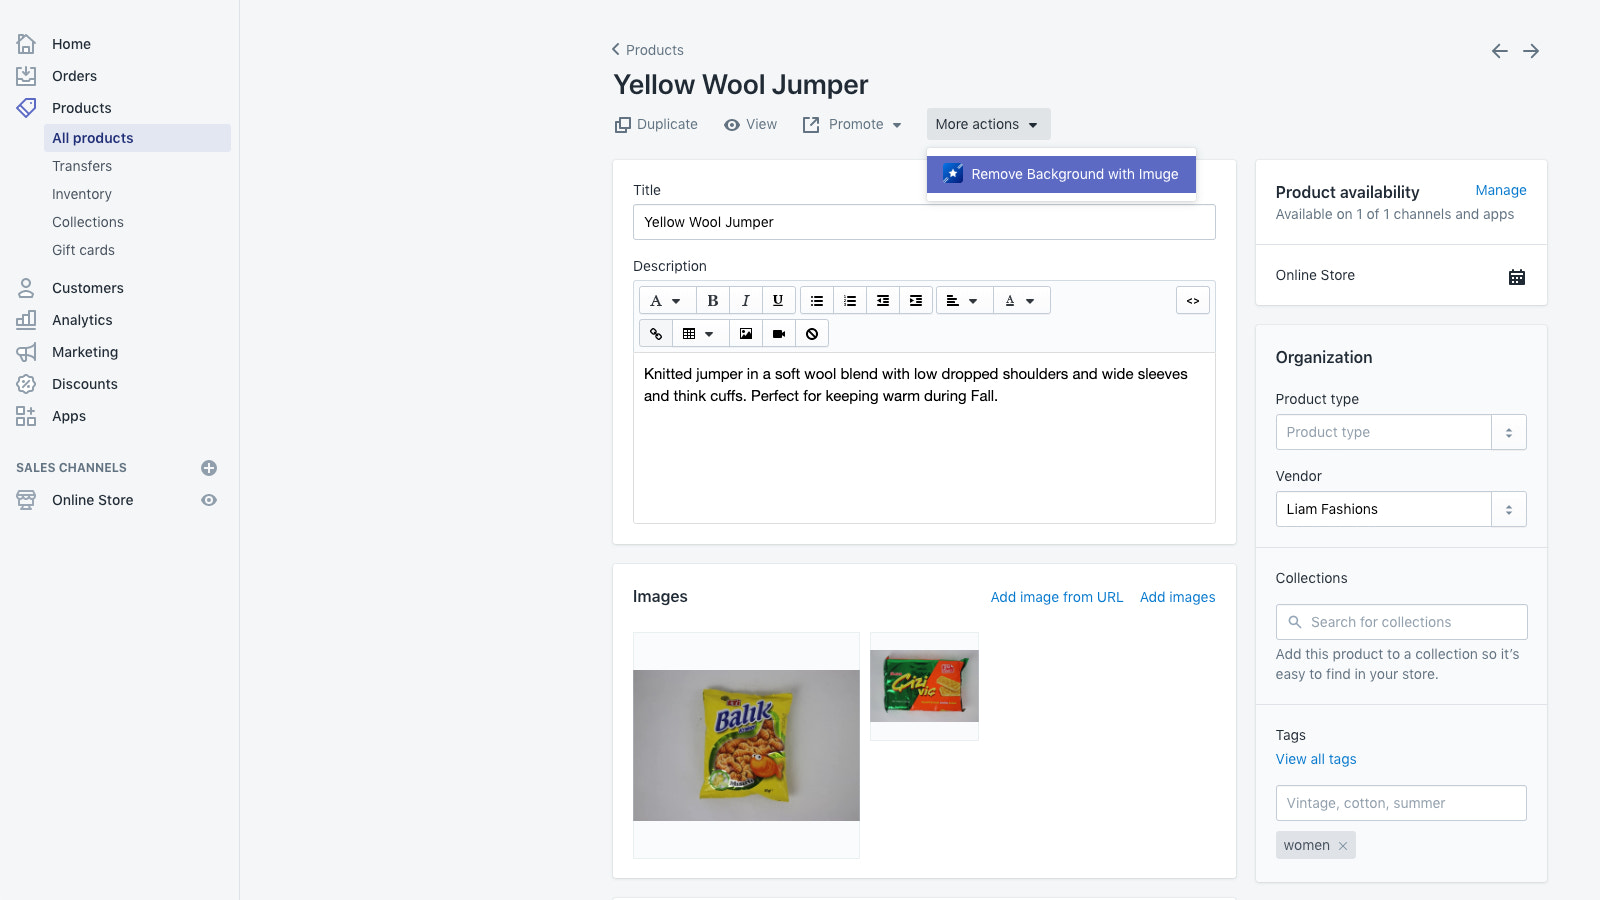 Integrates directly in product details as action menu entry